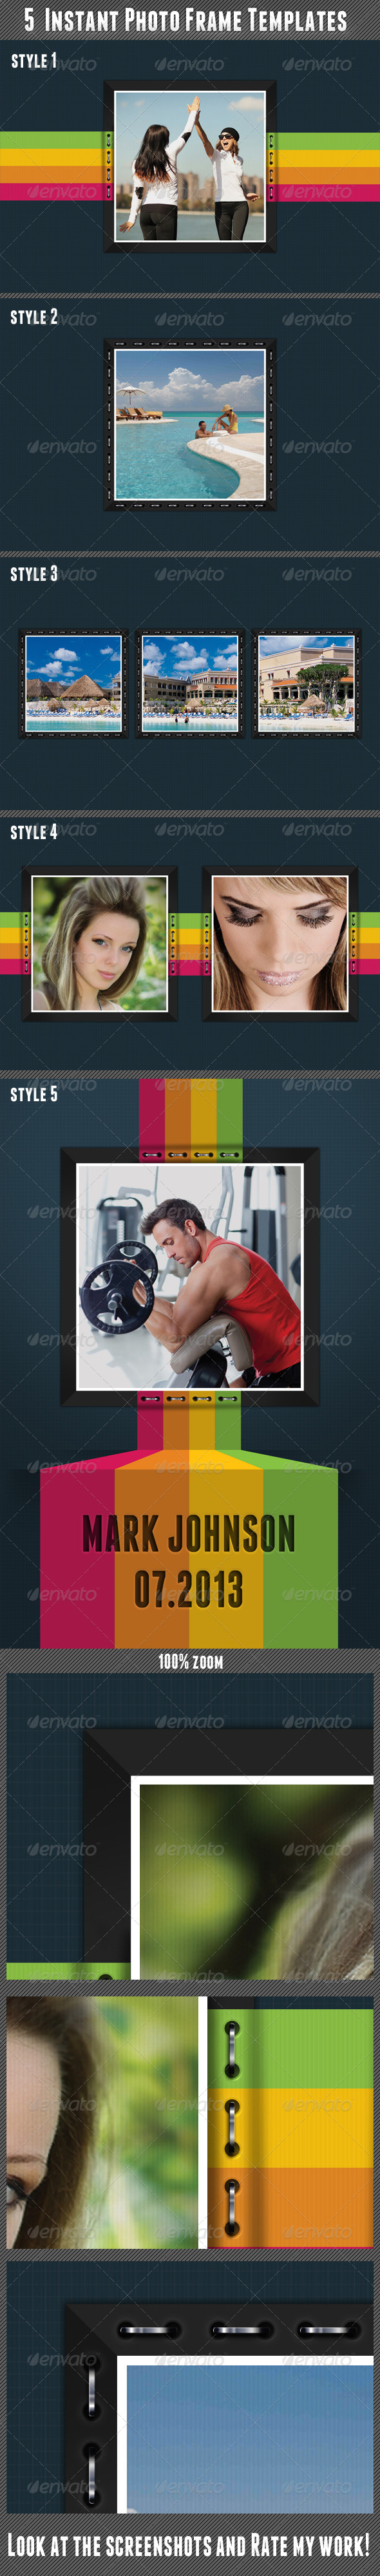 GraphicRiver Instant Photo Frame Templates 5101719